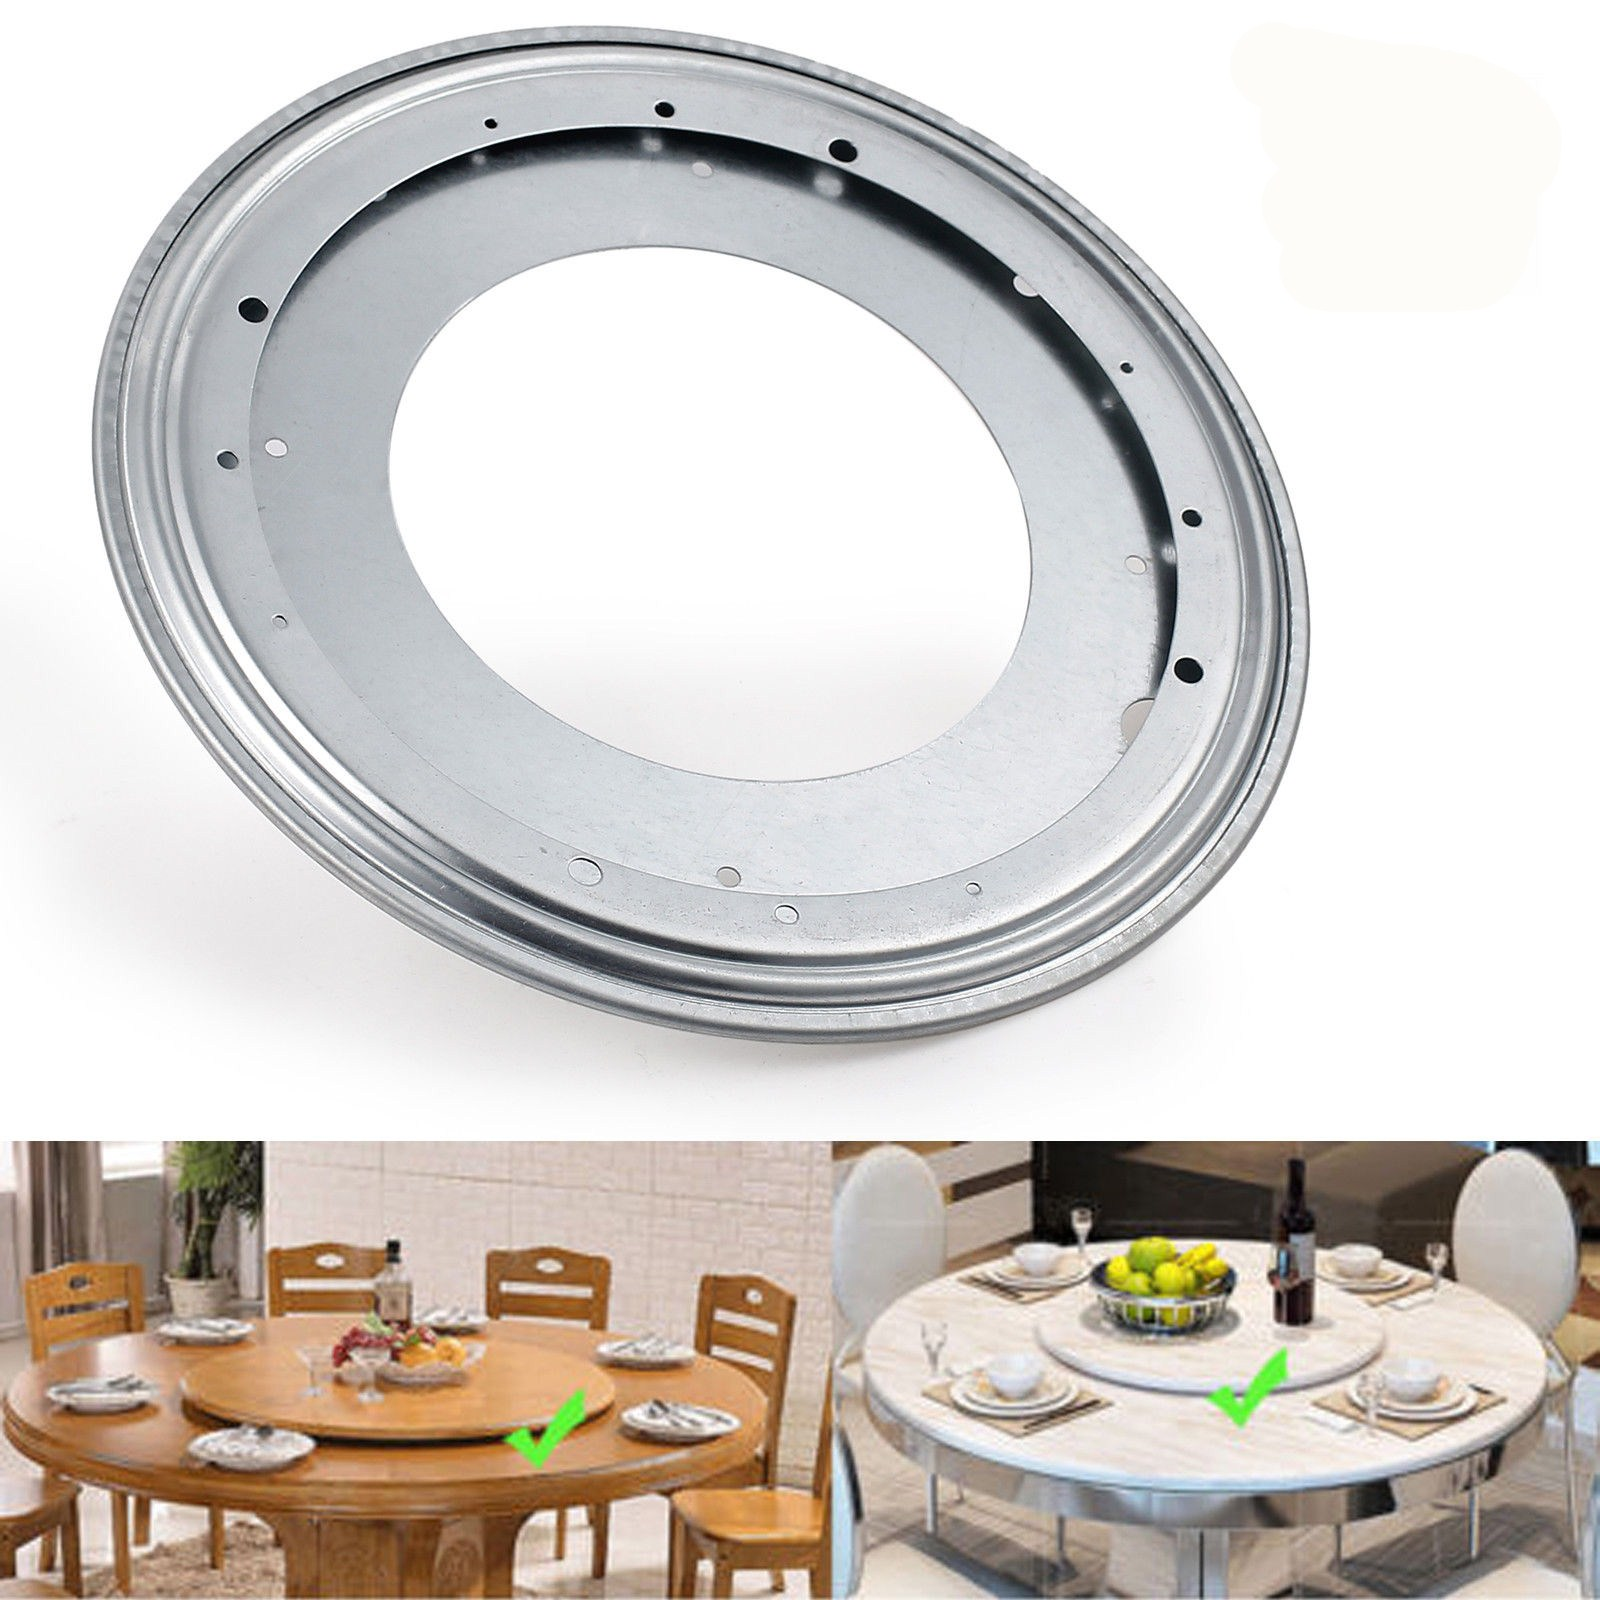 12 Inch Heavy Duty Lazy Susan Bearing Metal Swivel Bearing Swivel Plate Round Turntable Rotating For Table Plate цена